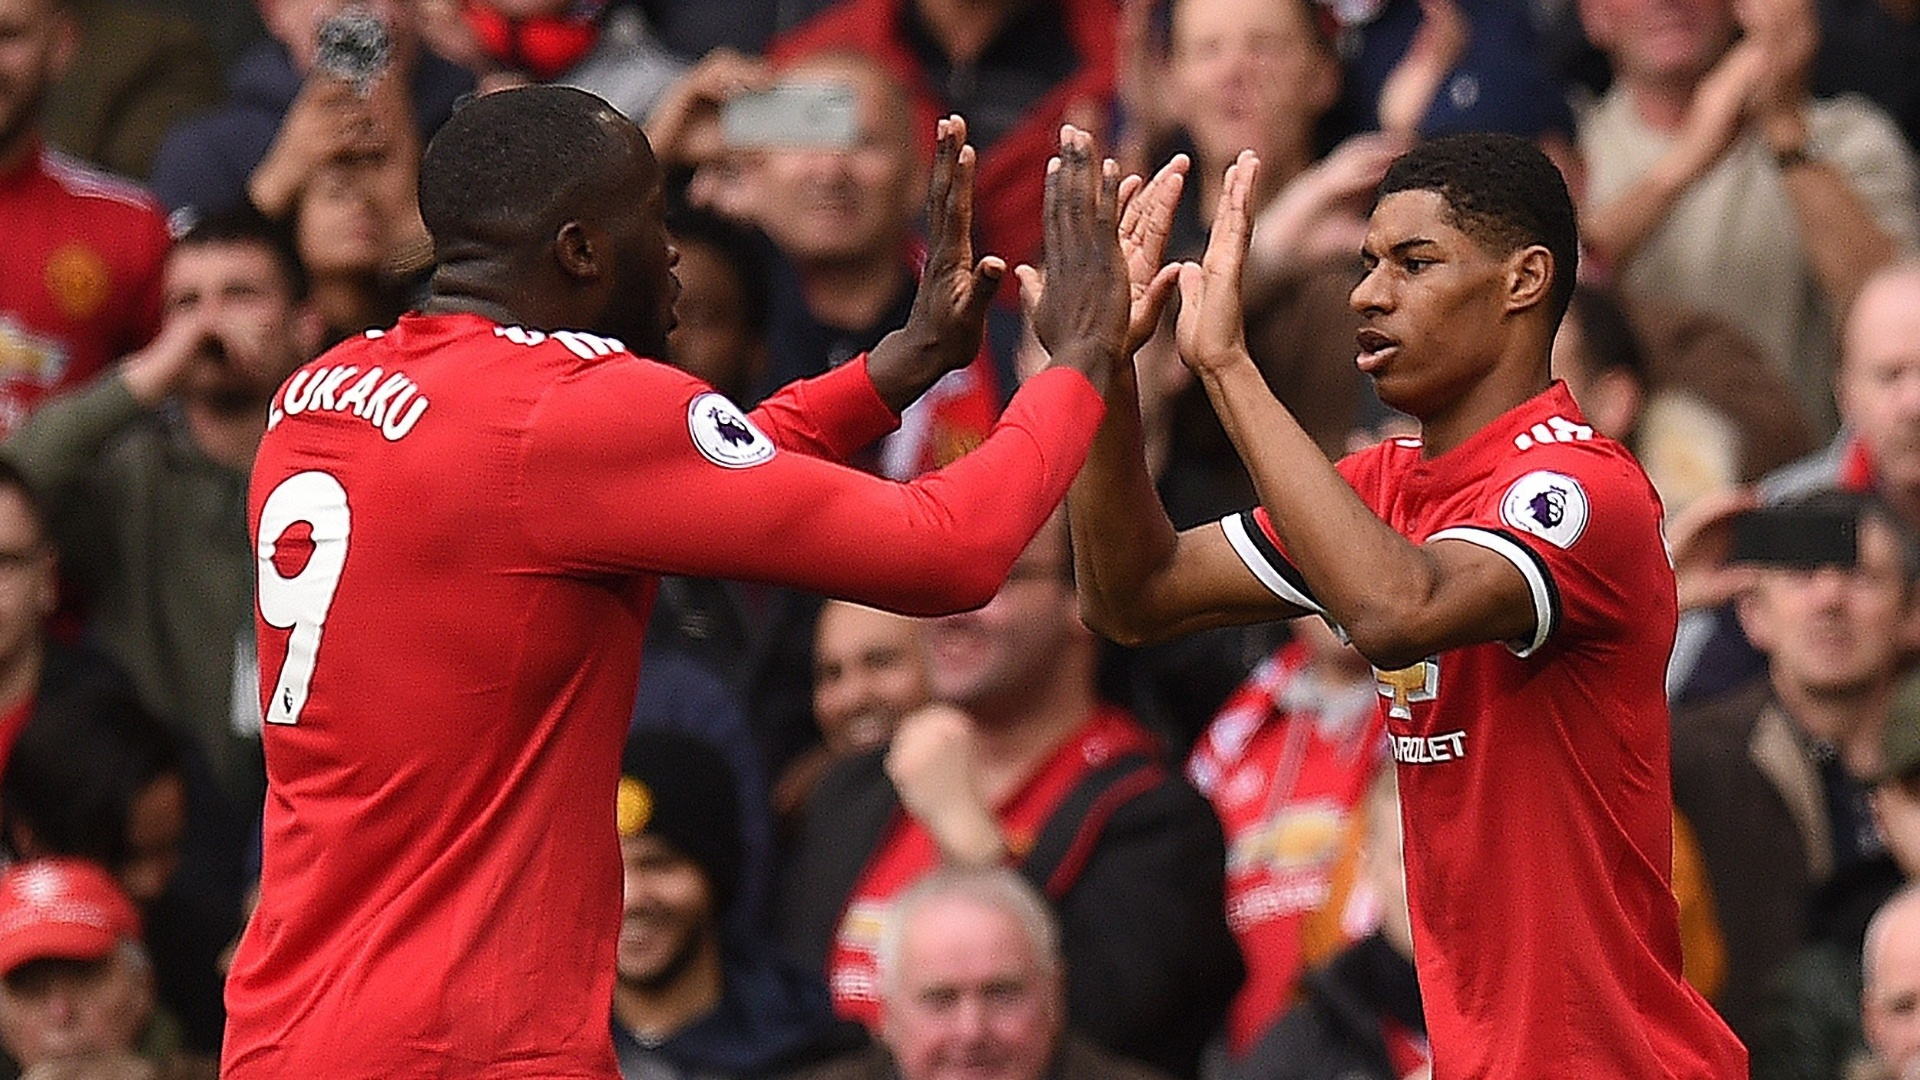 Rashford e Lukaku comemoram o gol do United sobre o Liverpool